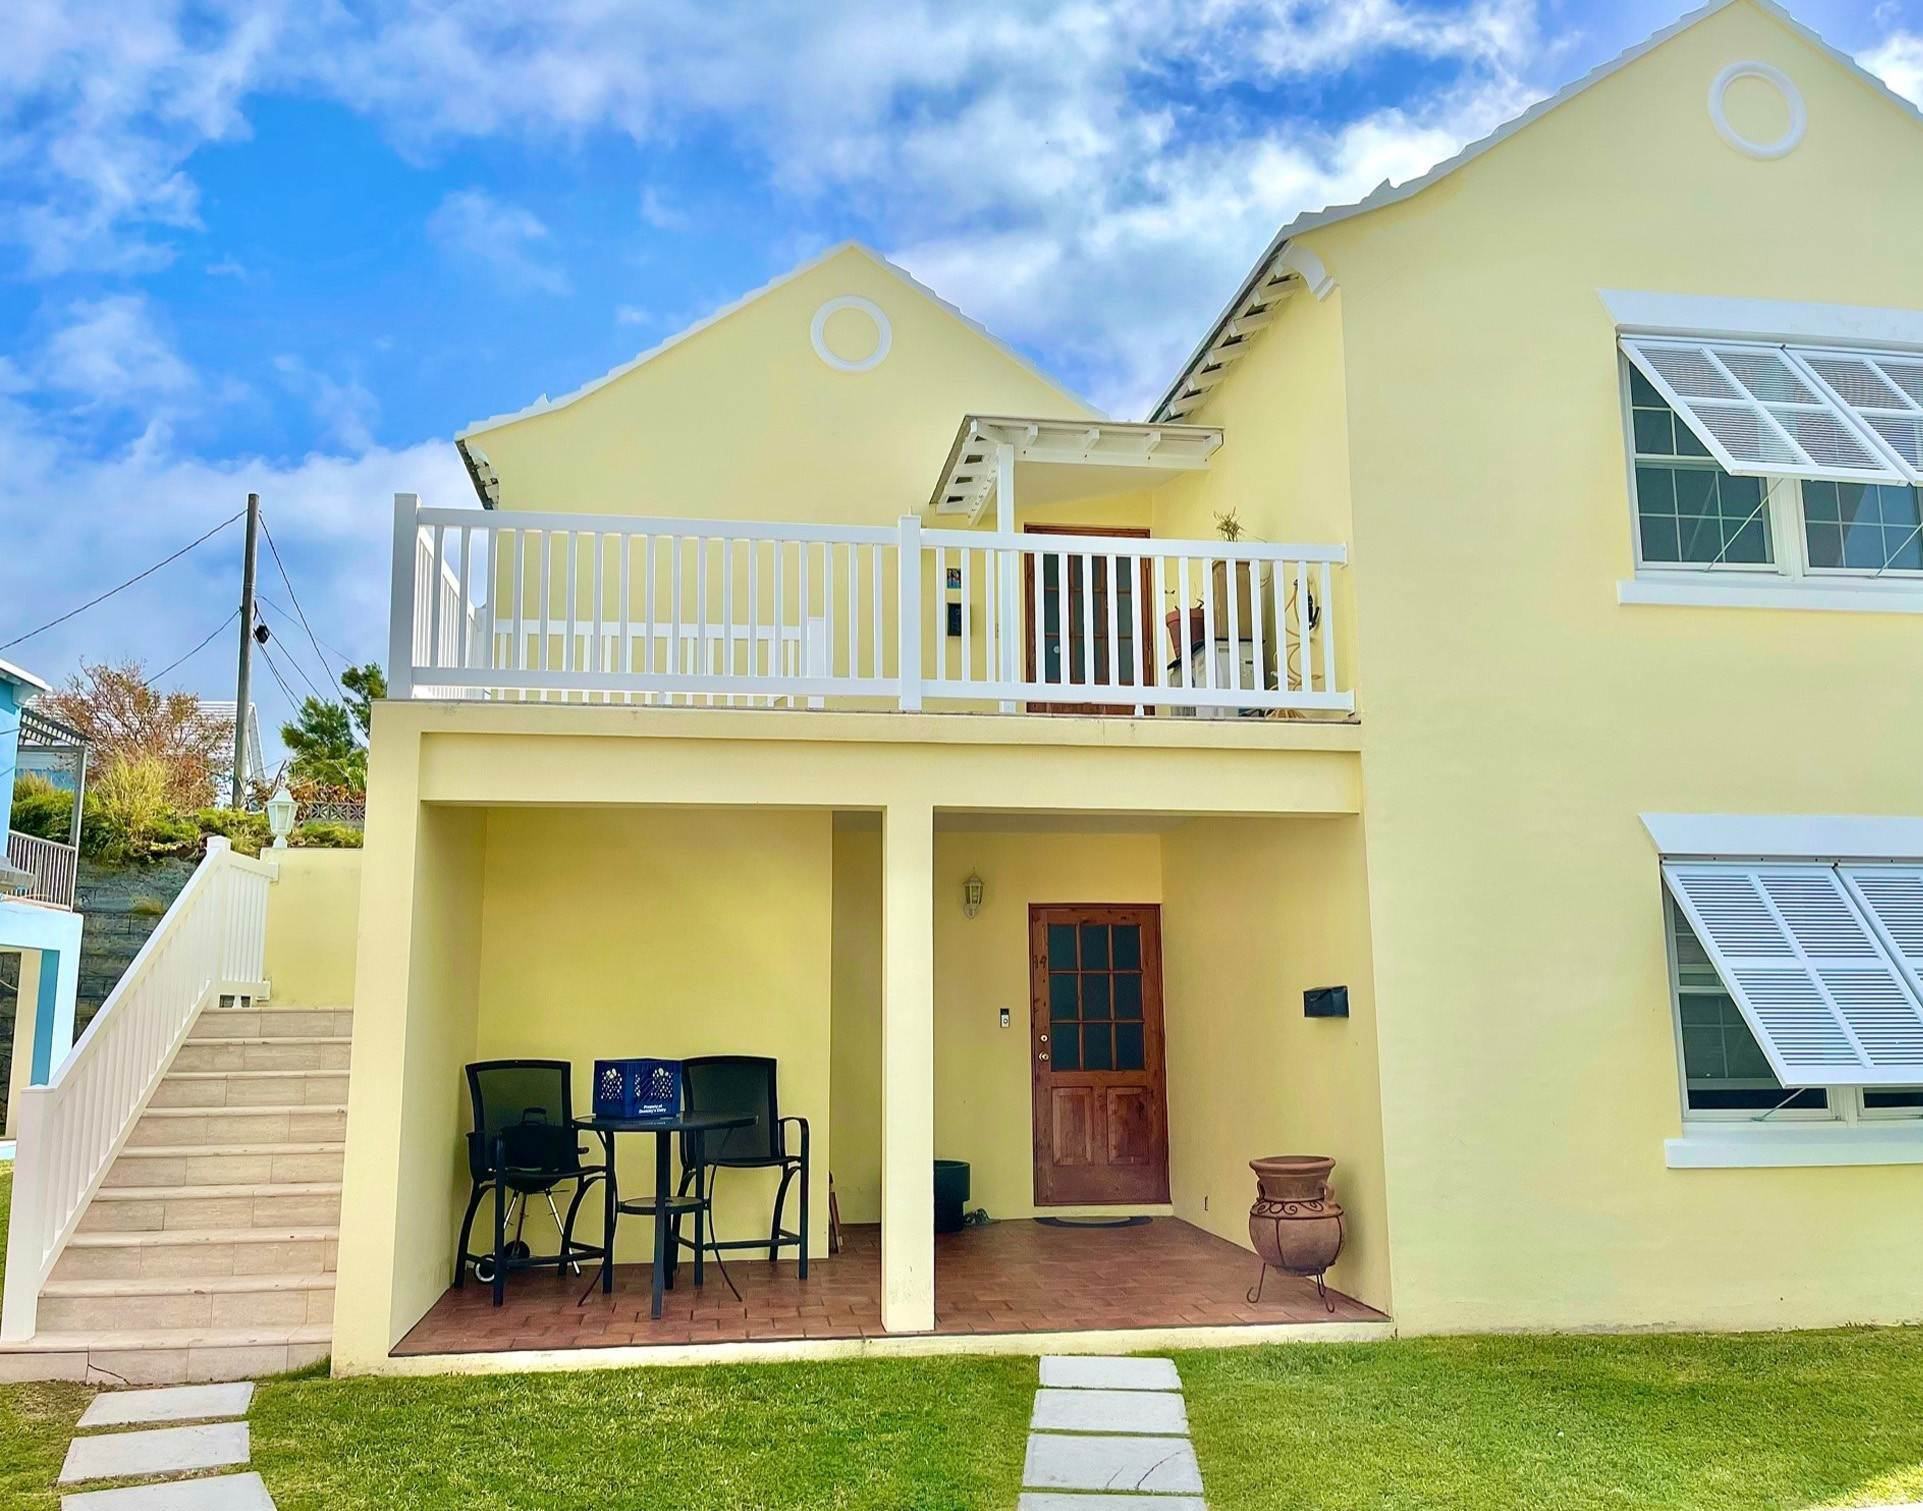 Condo / Townhouse / Flat for Sale at Trelawney Court Unit 15 5 Trelawney Lane Pembroke Parish, HM06 Bermuda